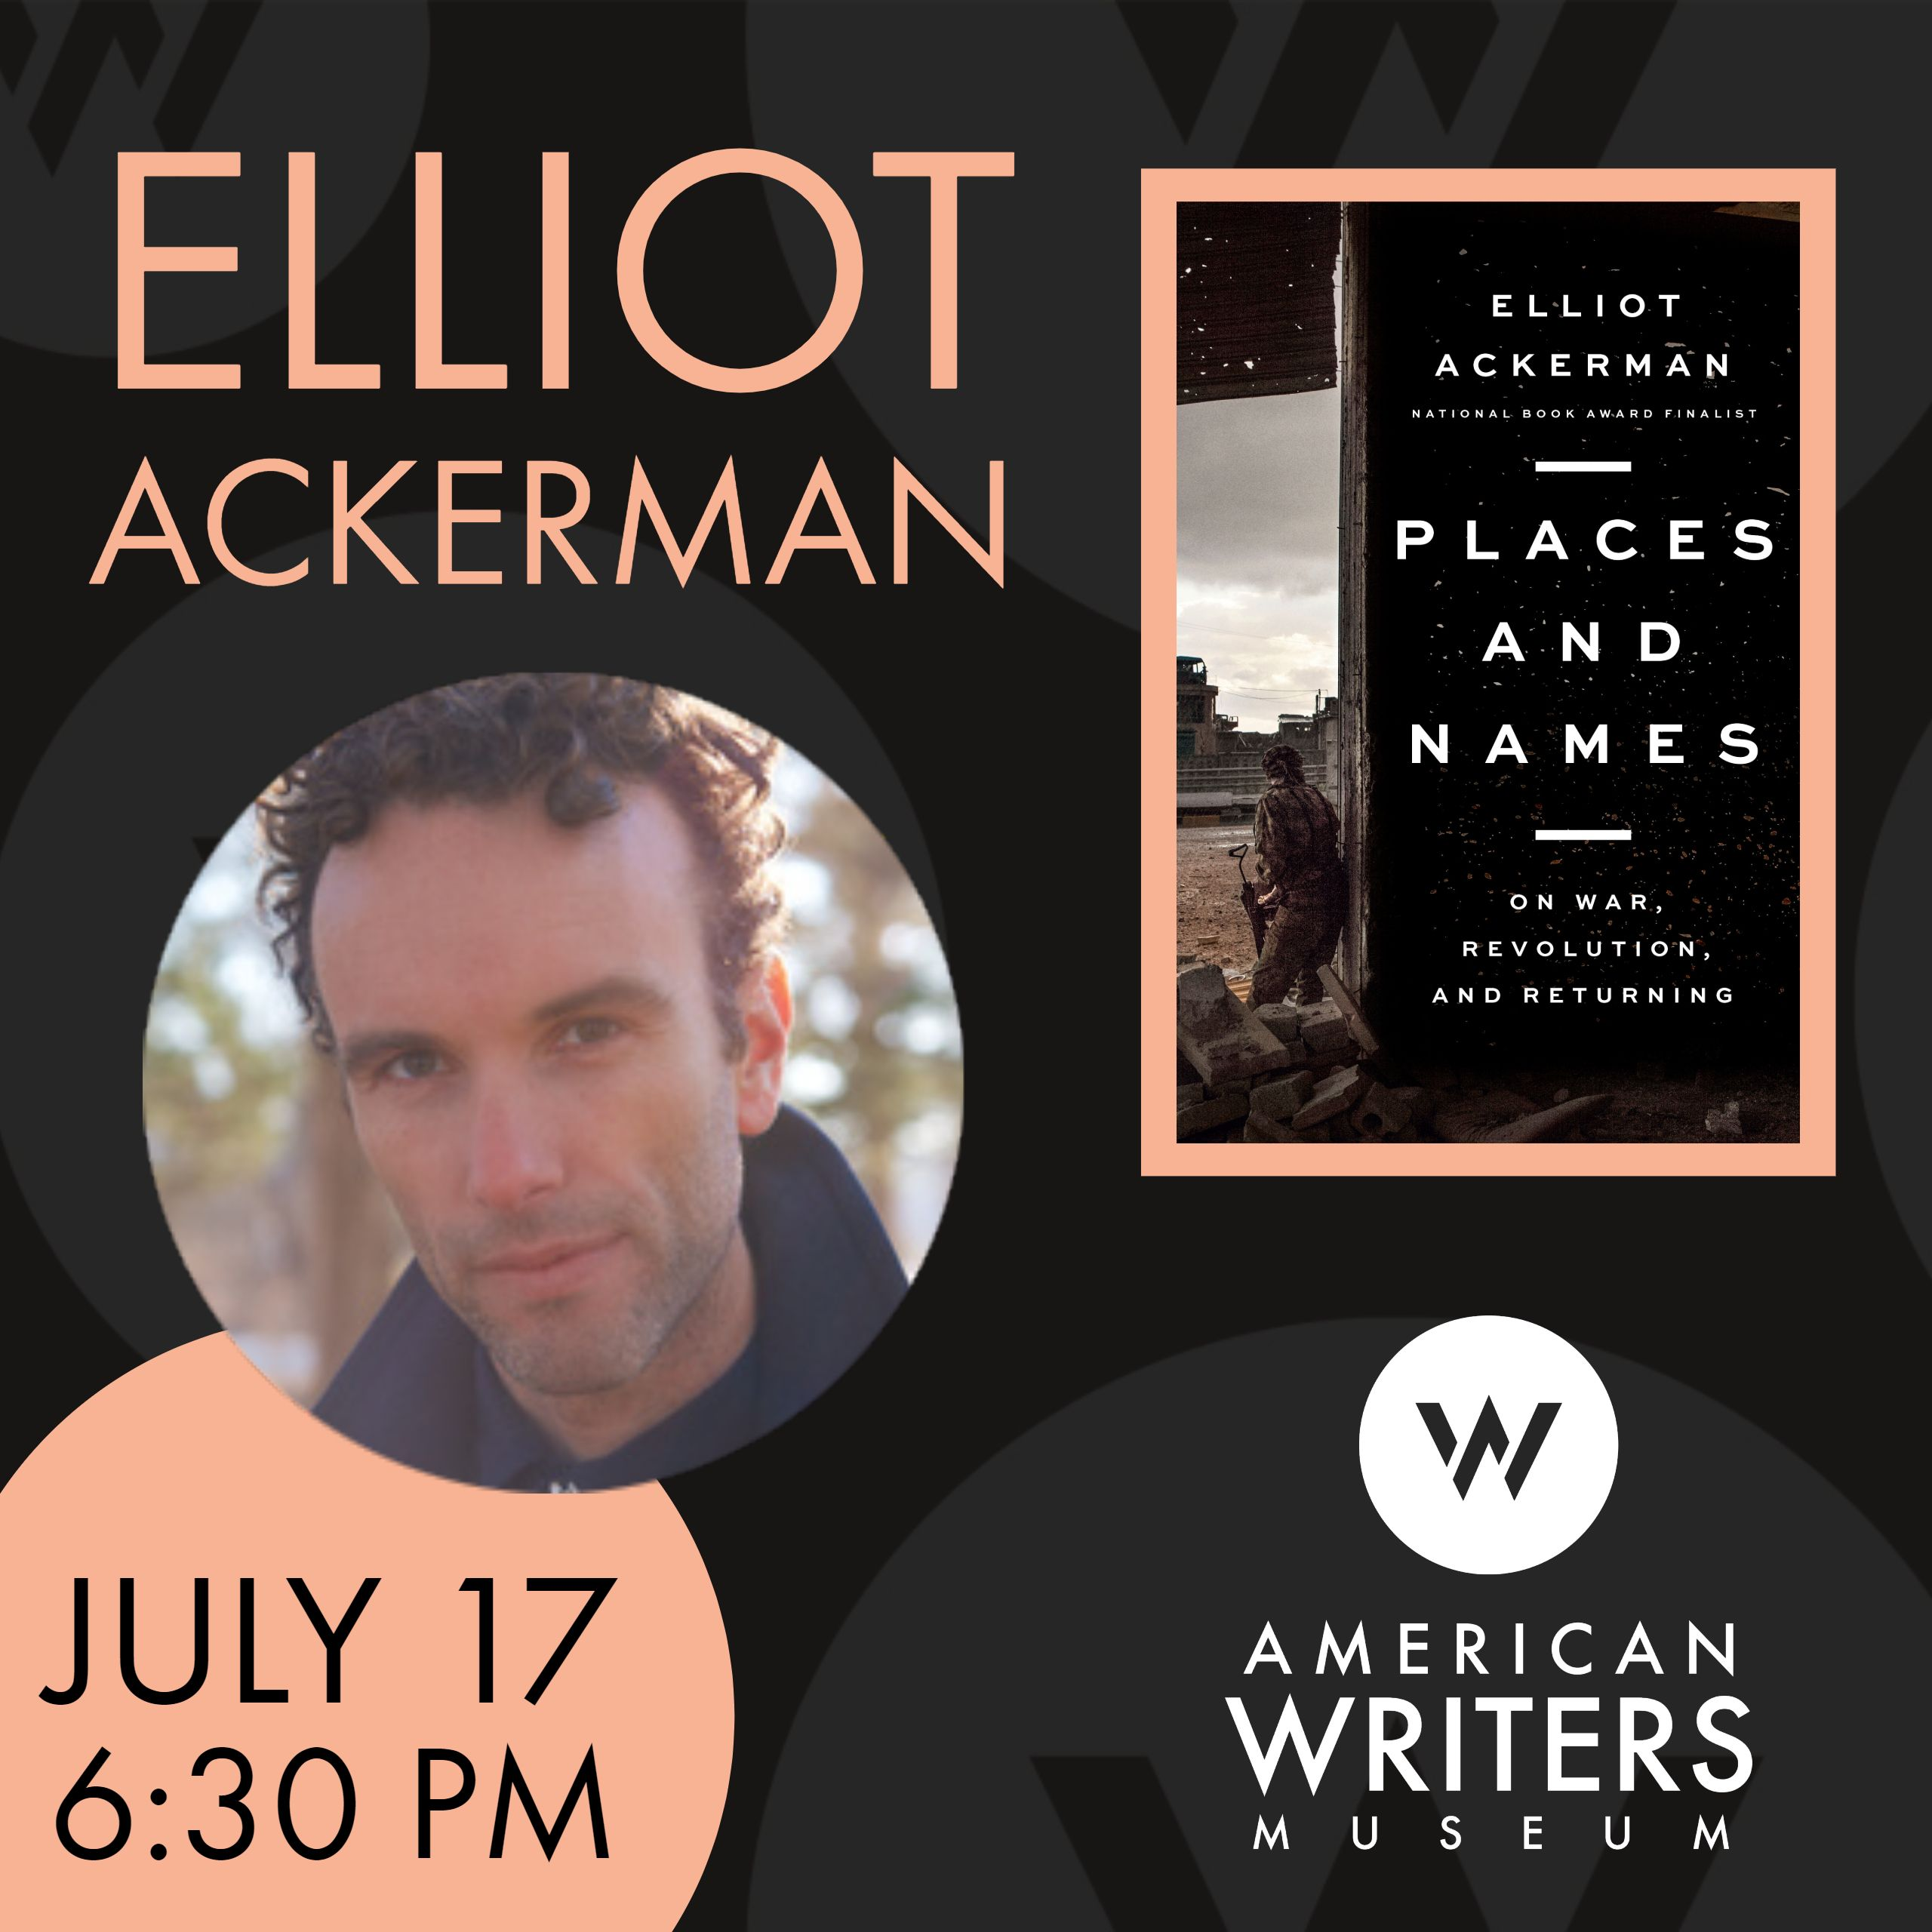 Elliot Ackerman presents his new memoir Places and Names at the American Writers Museum in Chicago at 6:30 p.m. on July 17.